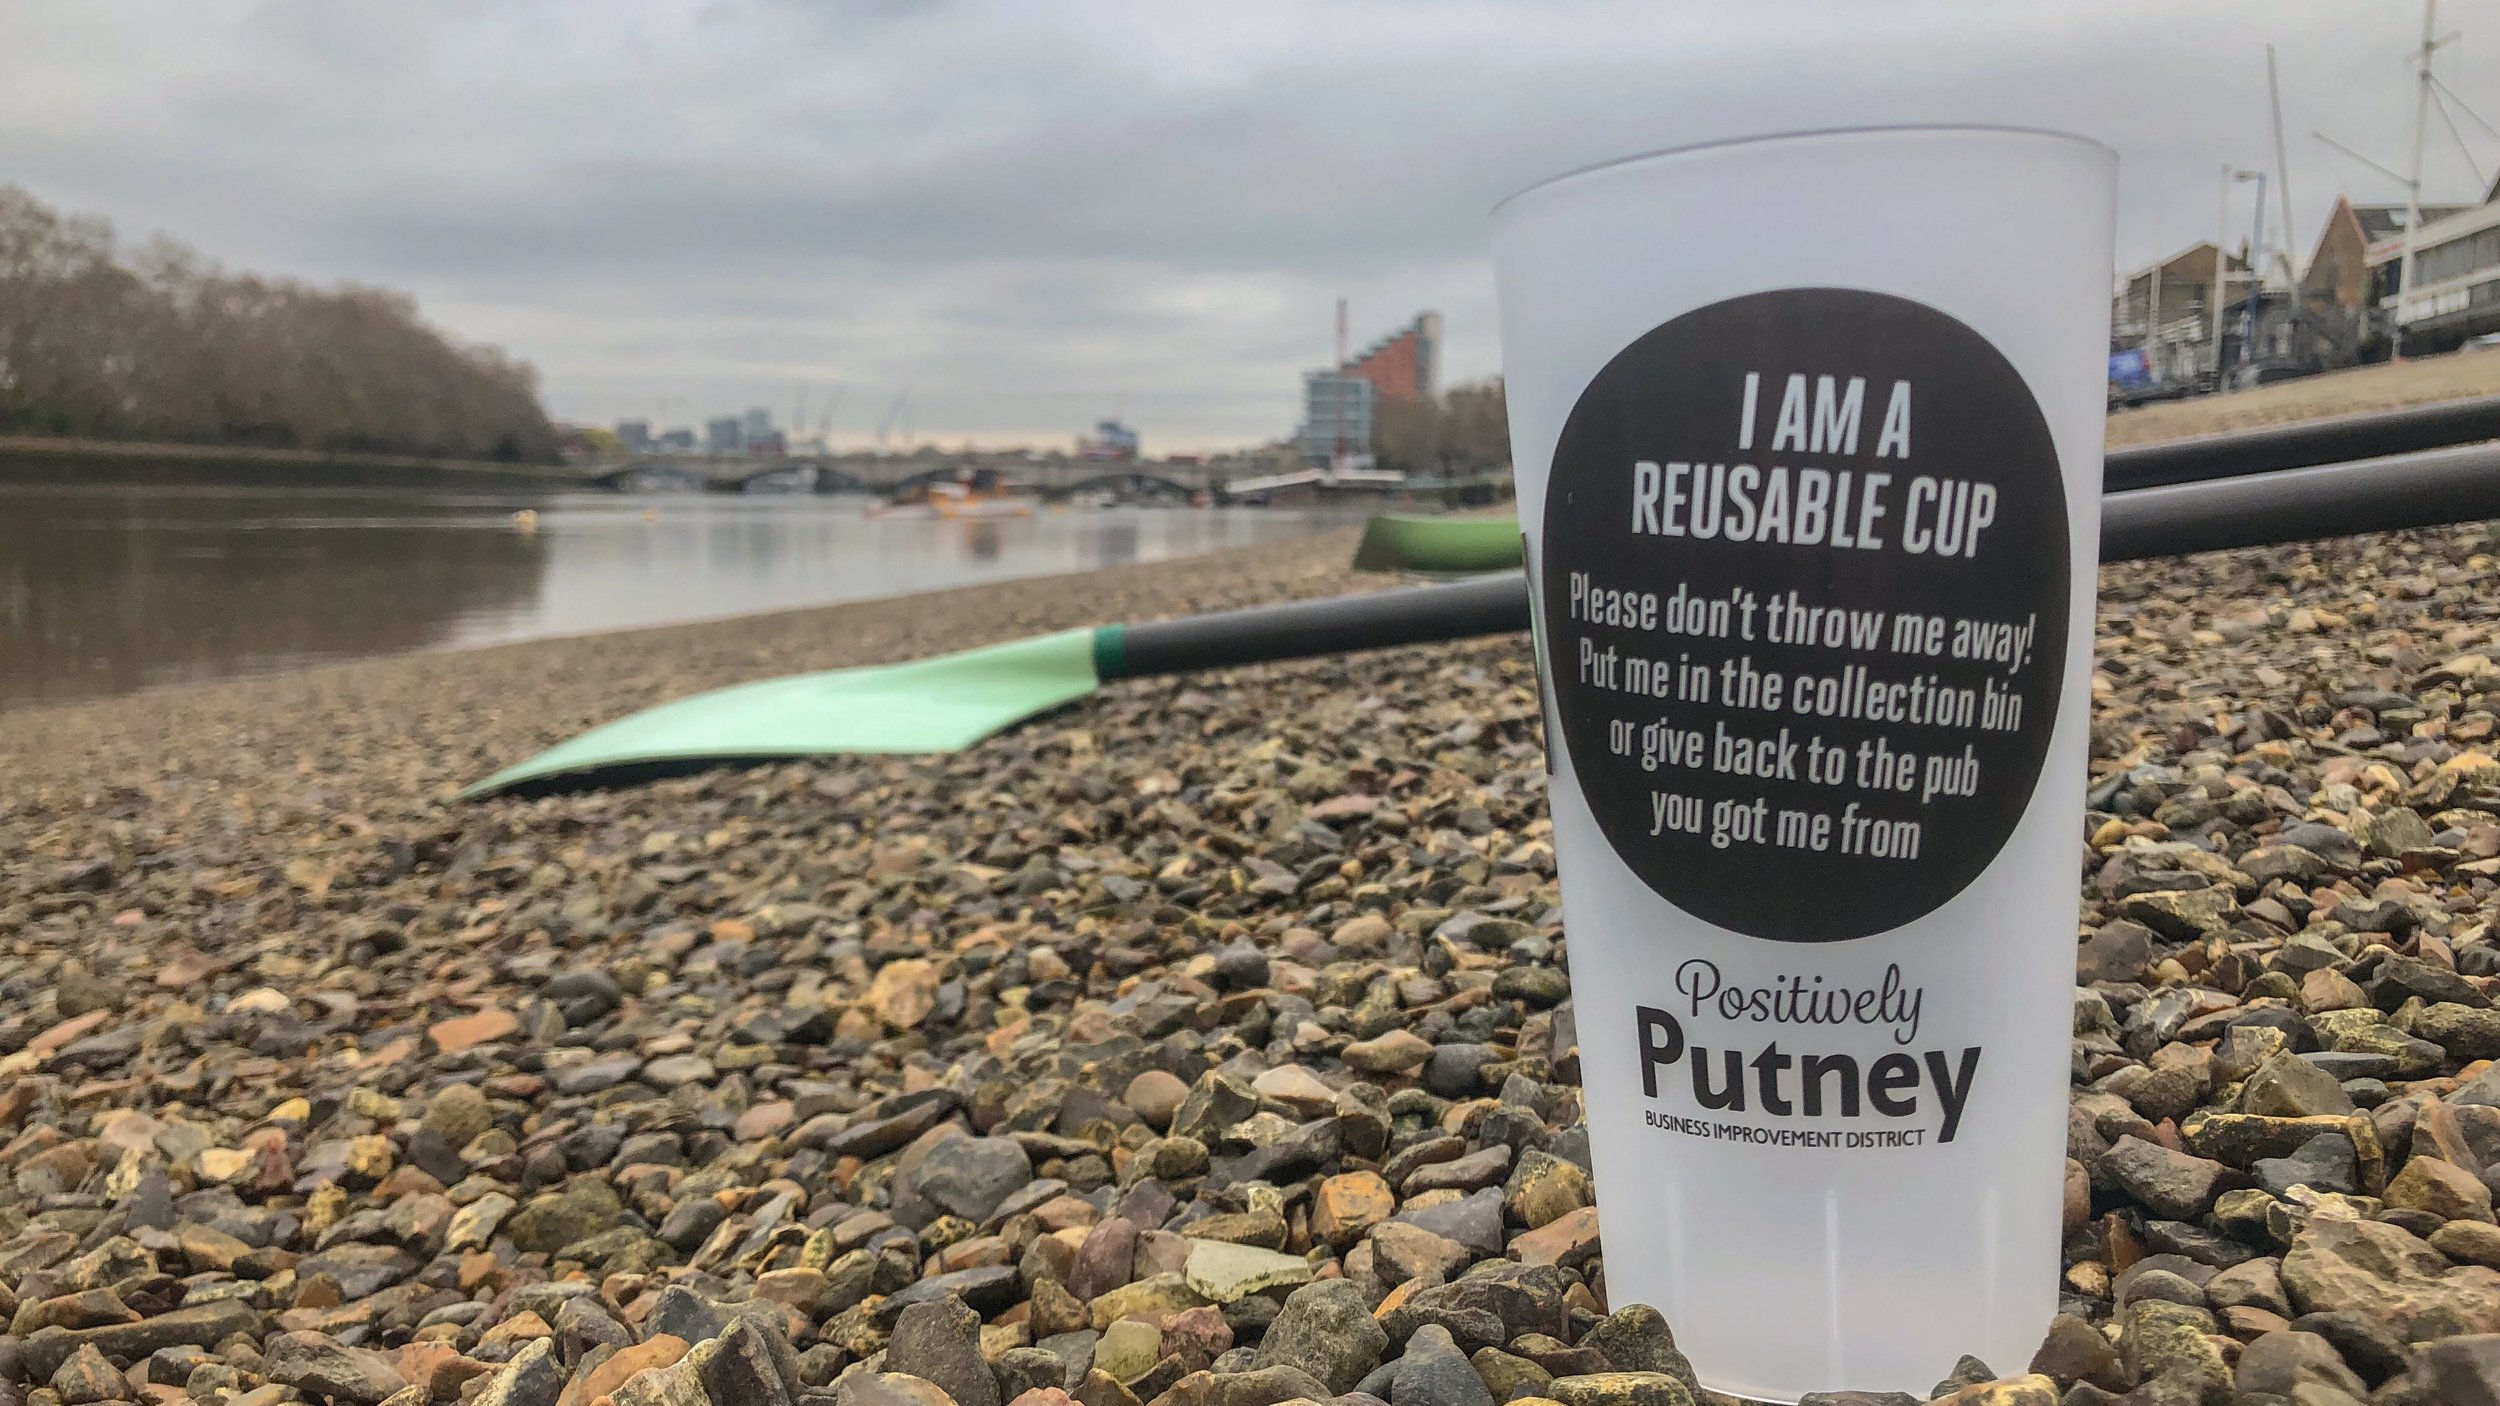 reusable-beer-cups-for-boat-race-spectators-in-bid-to-cut-river-pollution-136435217788302601-190401160151.jpg